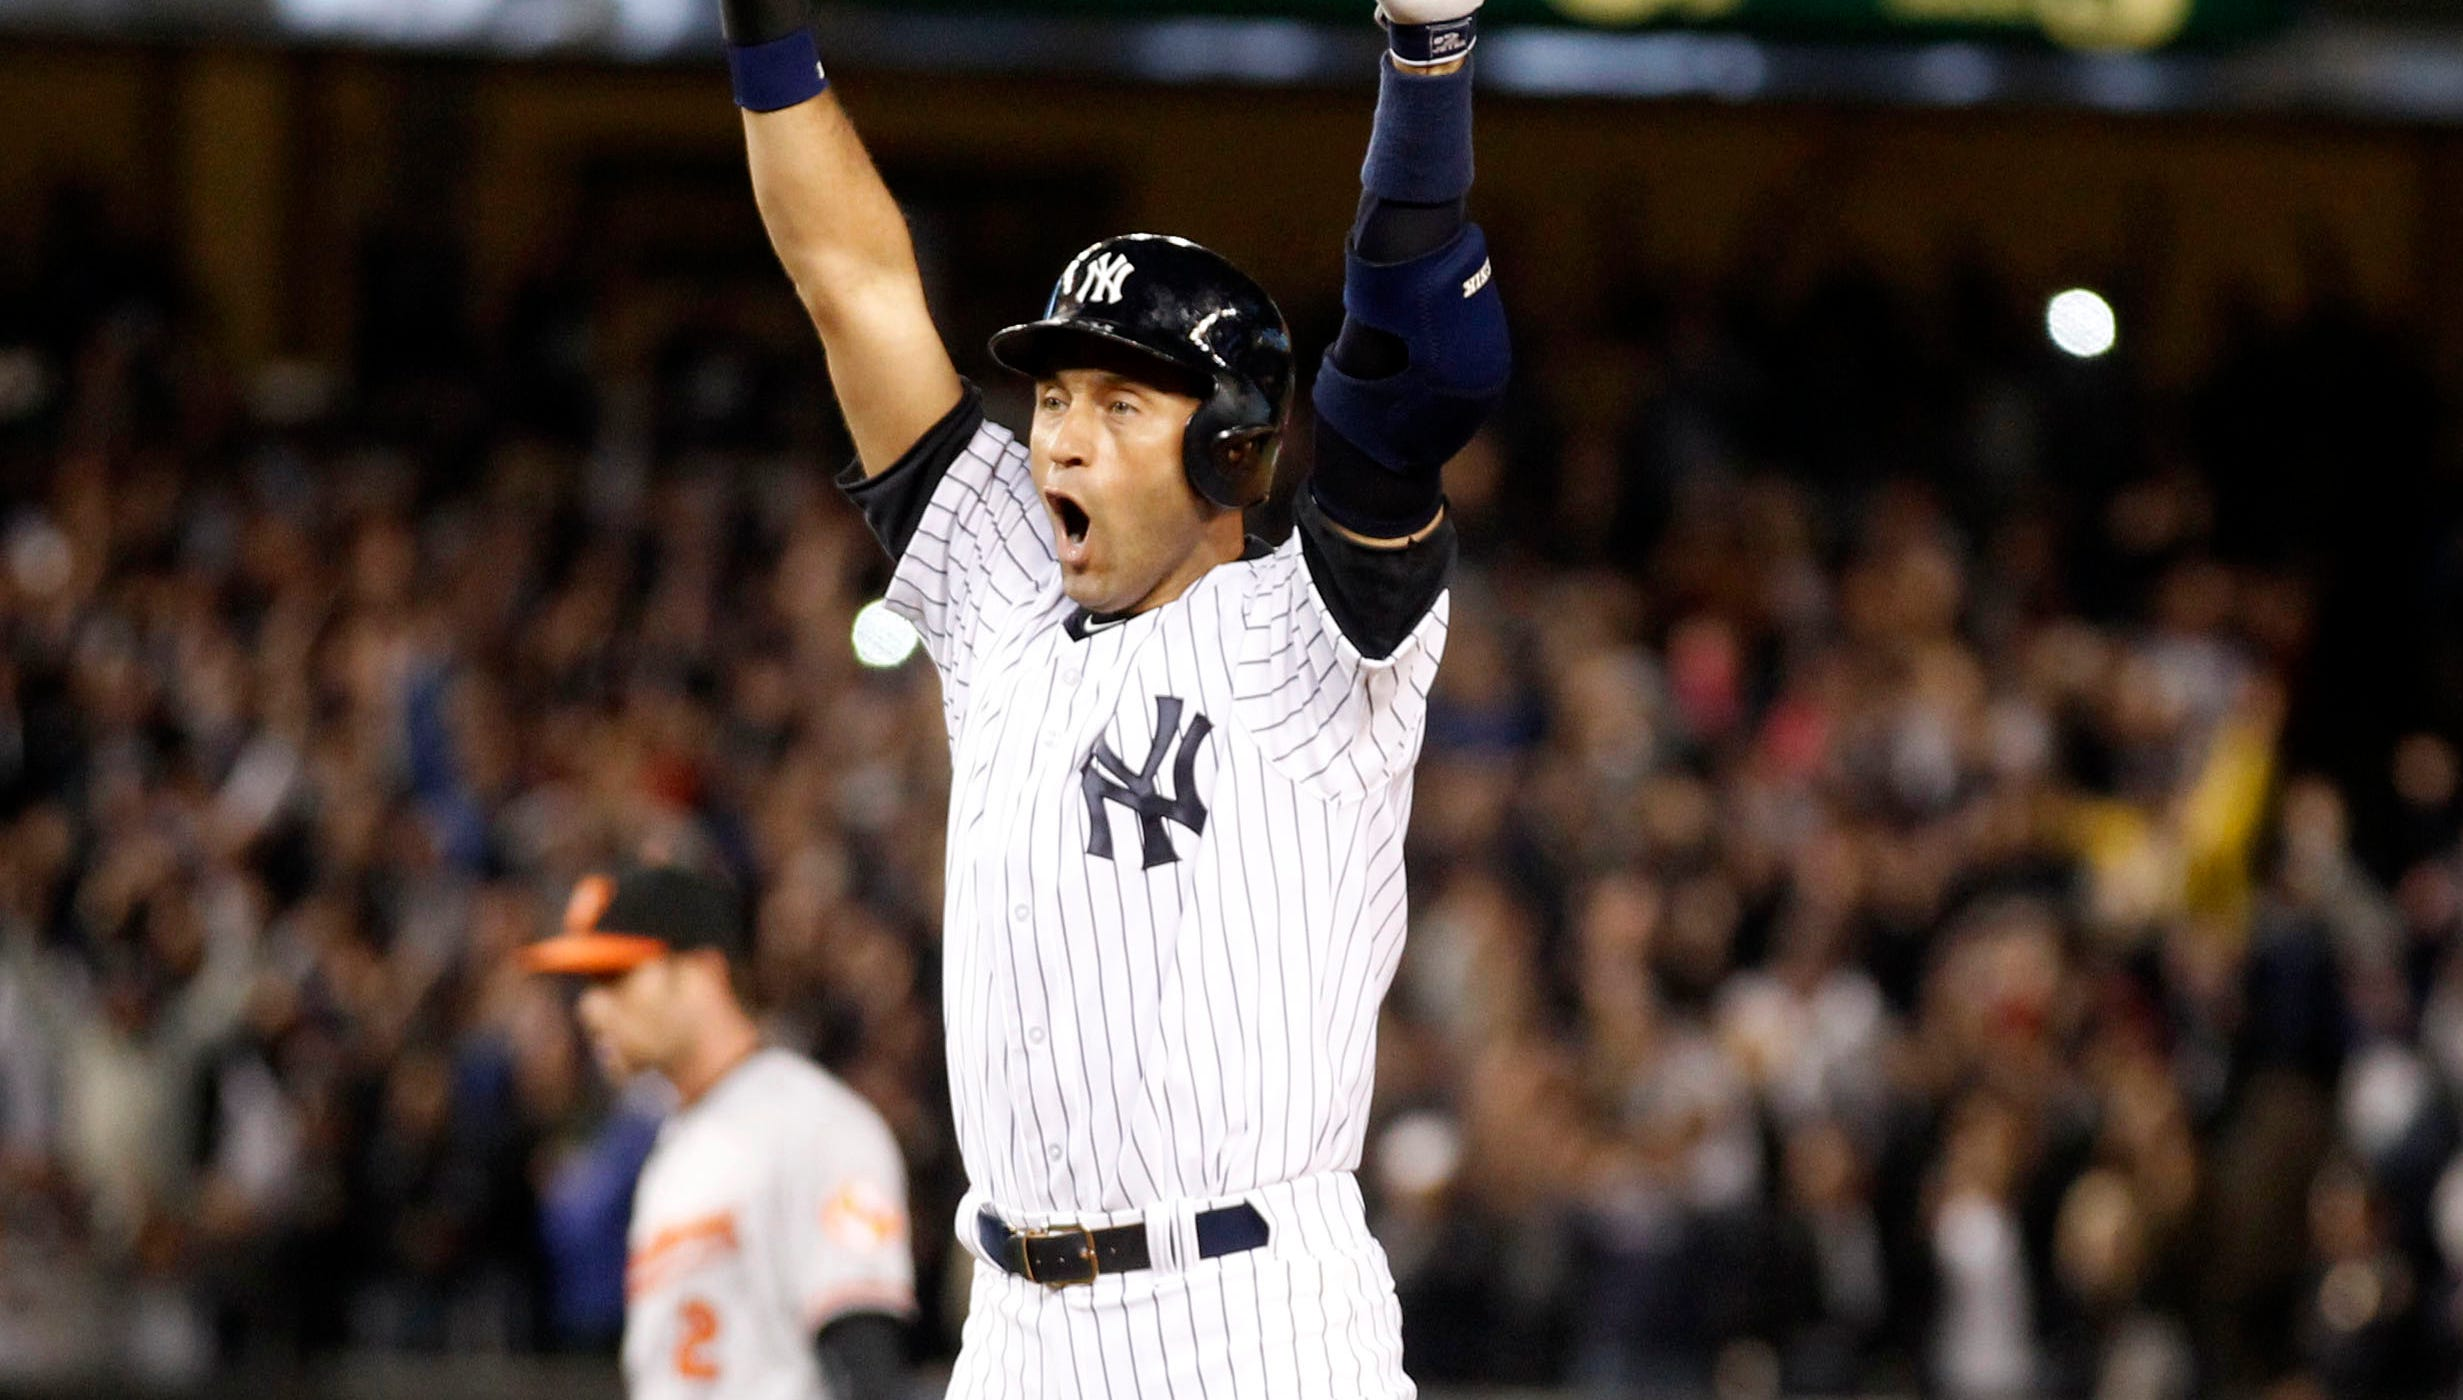 Jeter celebrates after his walk-off single in his final game at Yankee Stadium on Sept. 25, 2014.